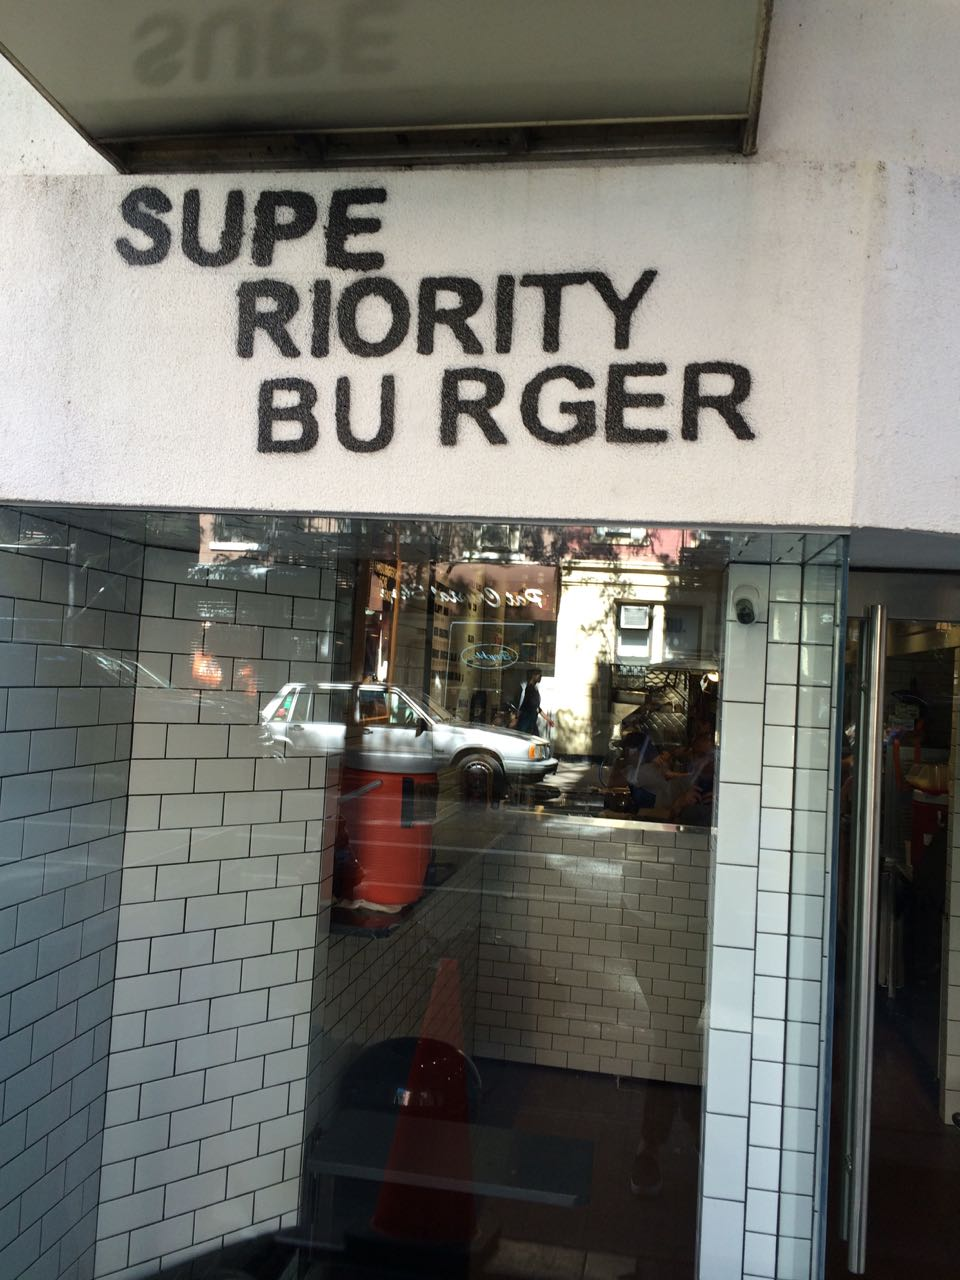 Superiority Burger Sign.jpg